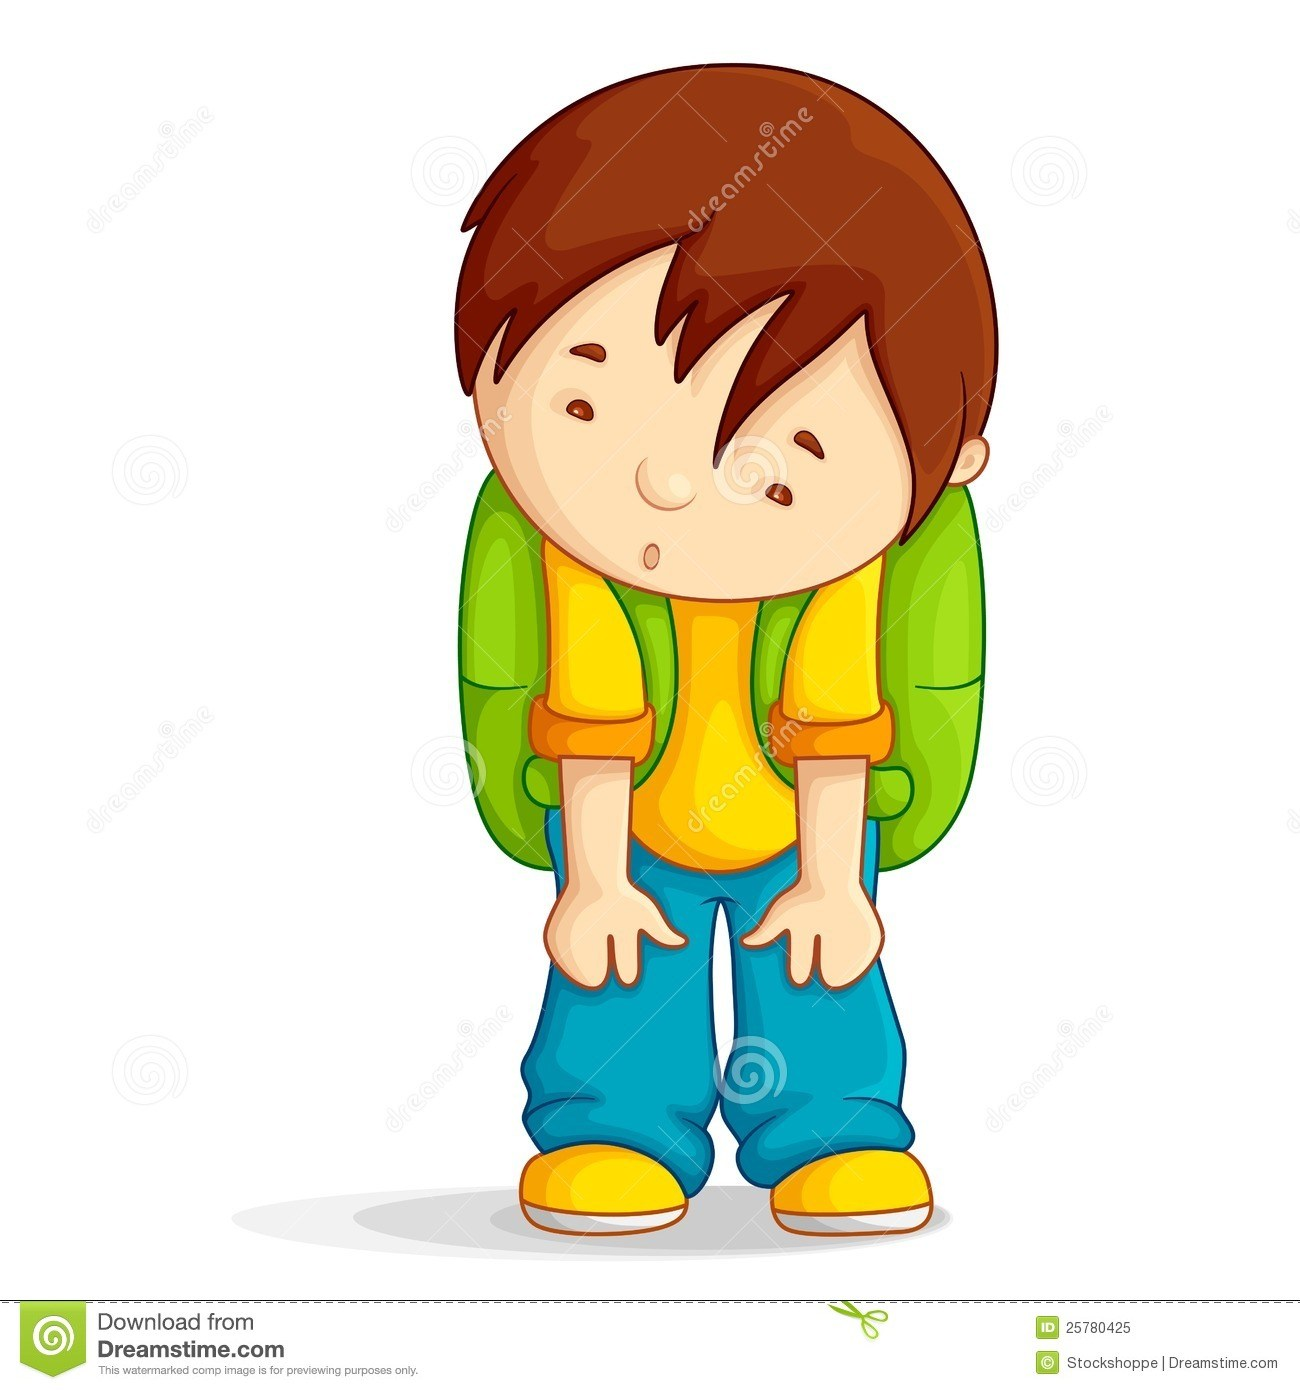 Sad boy clipart 2 » Clipart Portal.